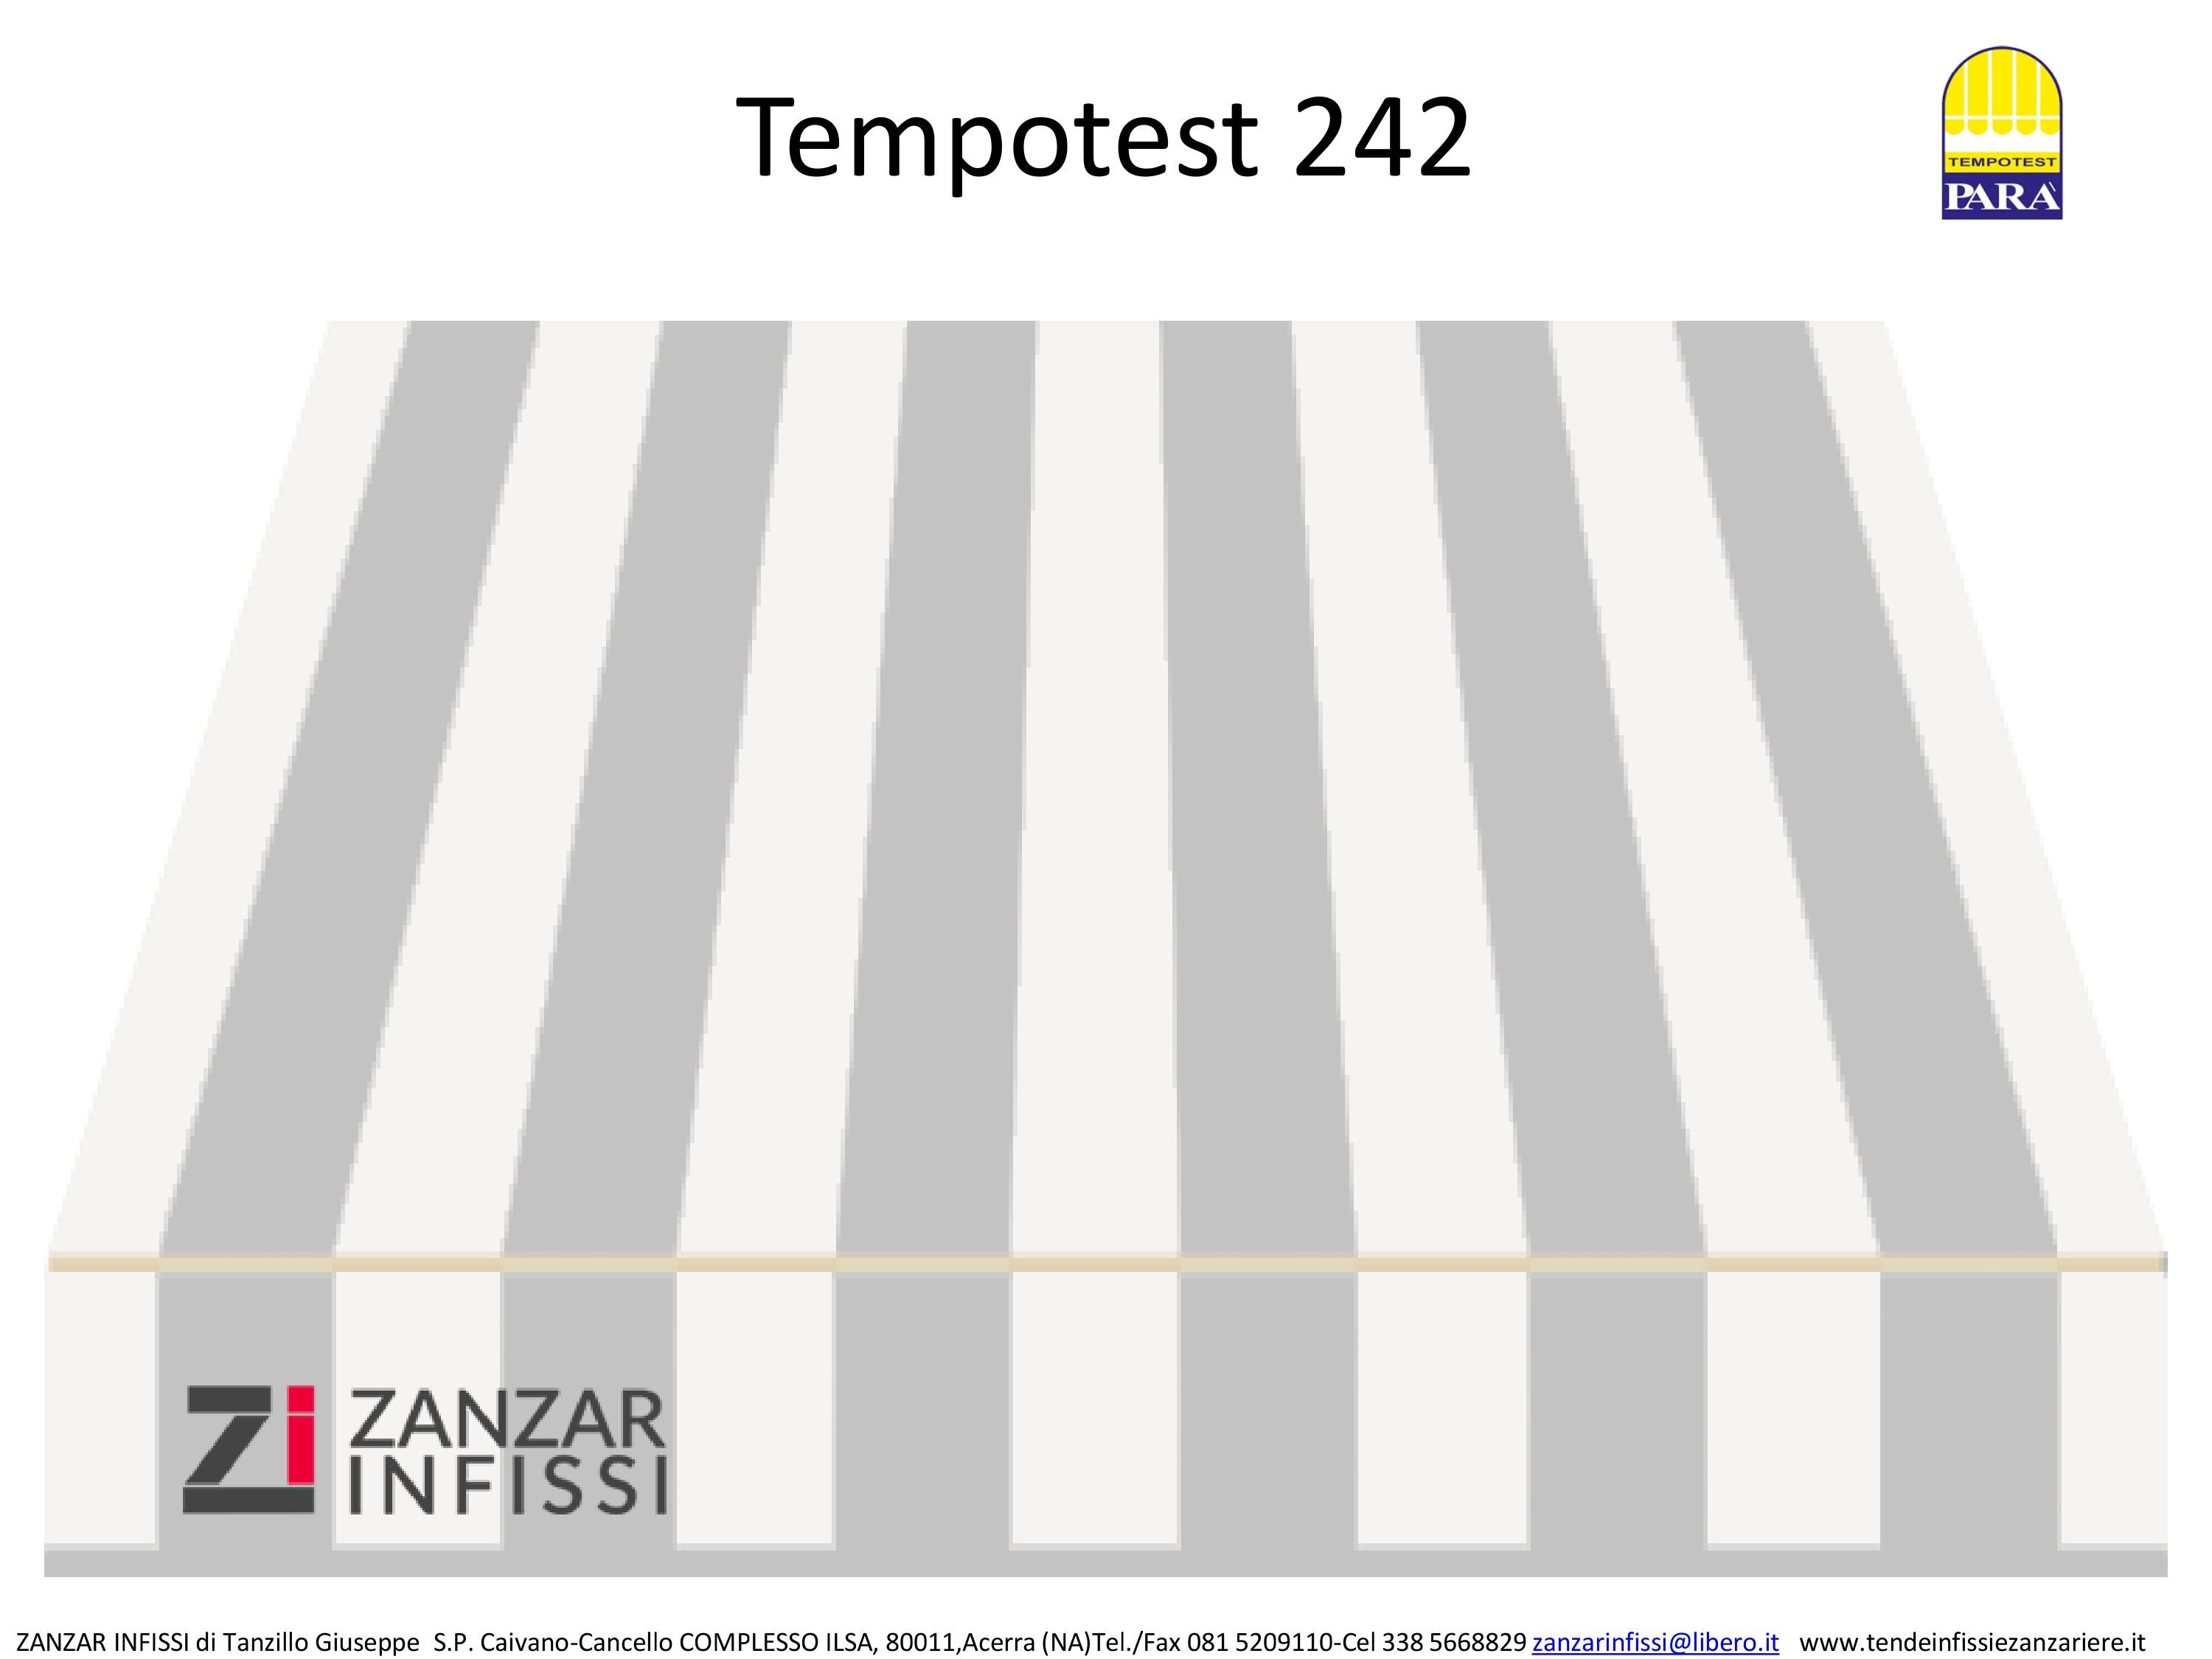 Tempotest 242